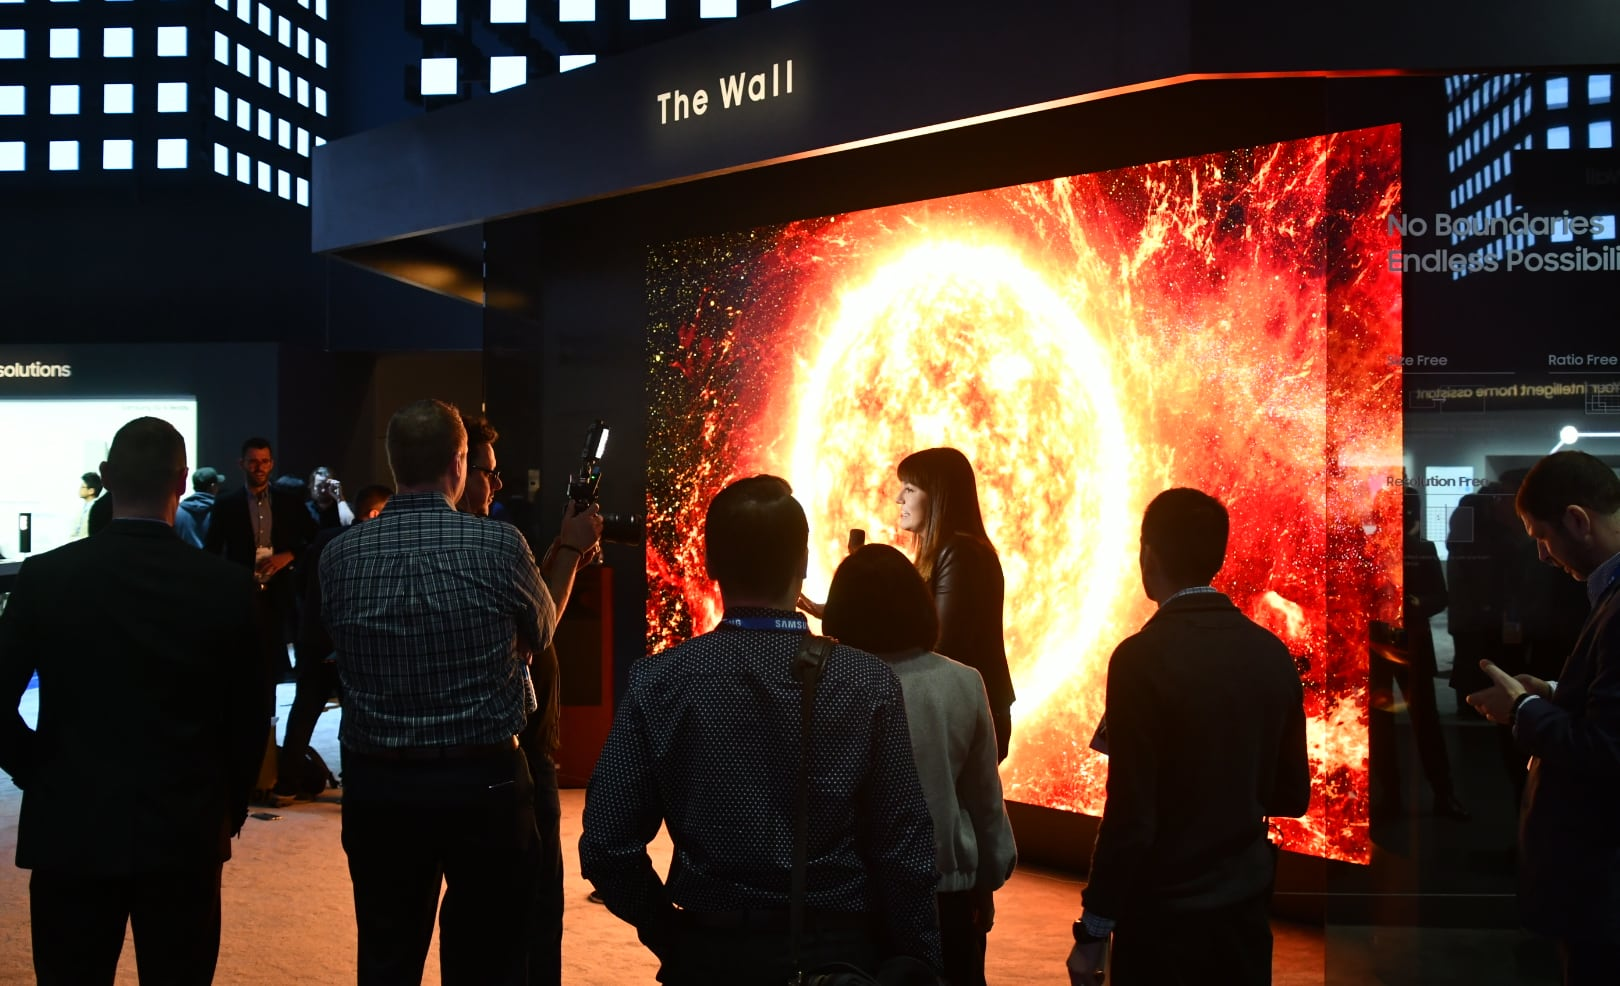 Samsung will launch 'The Wall Luxury' microLED displays in